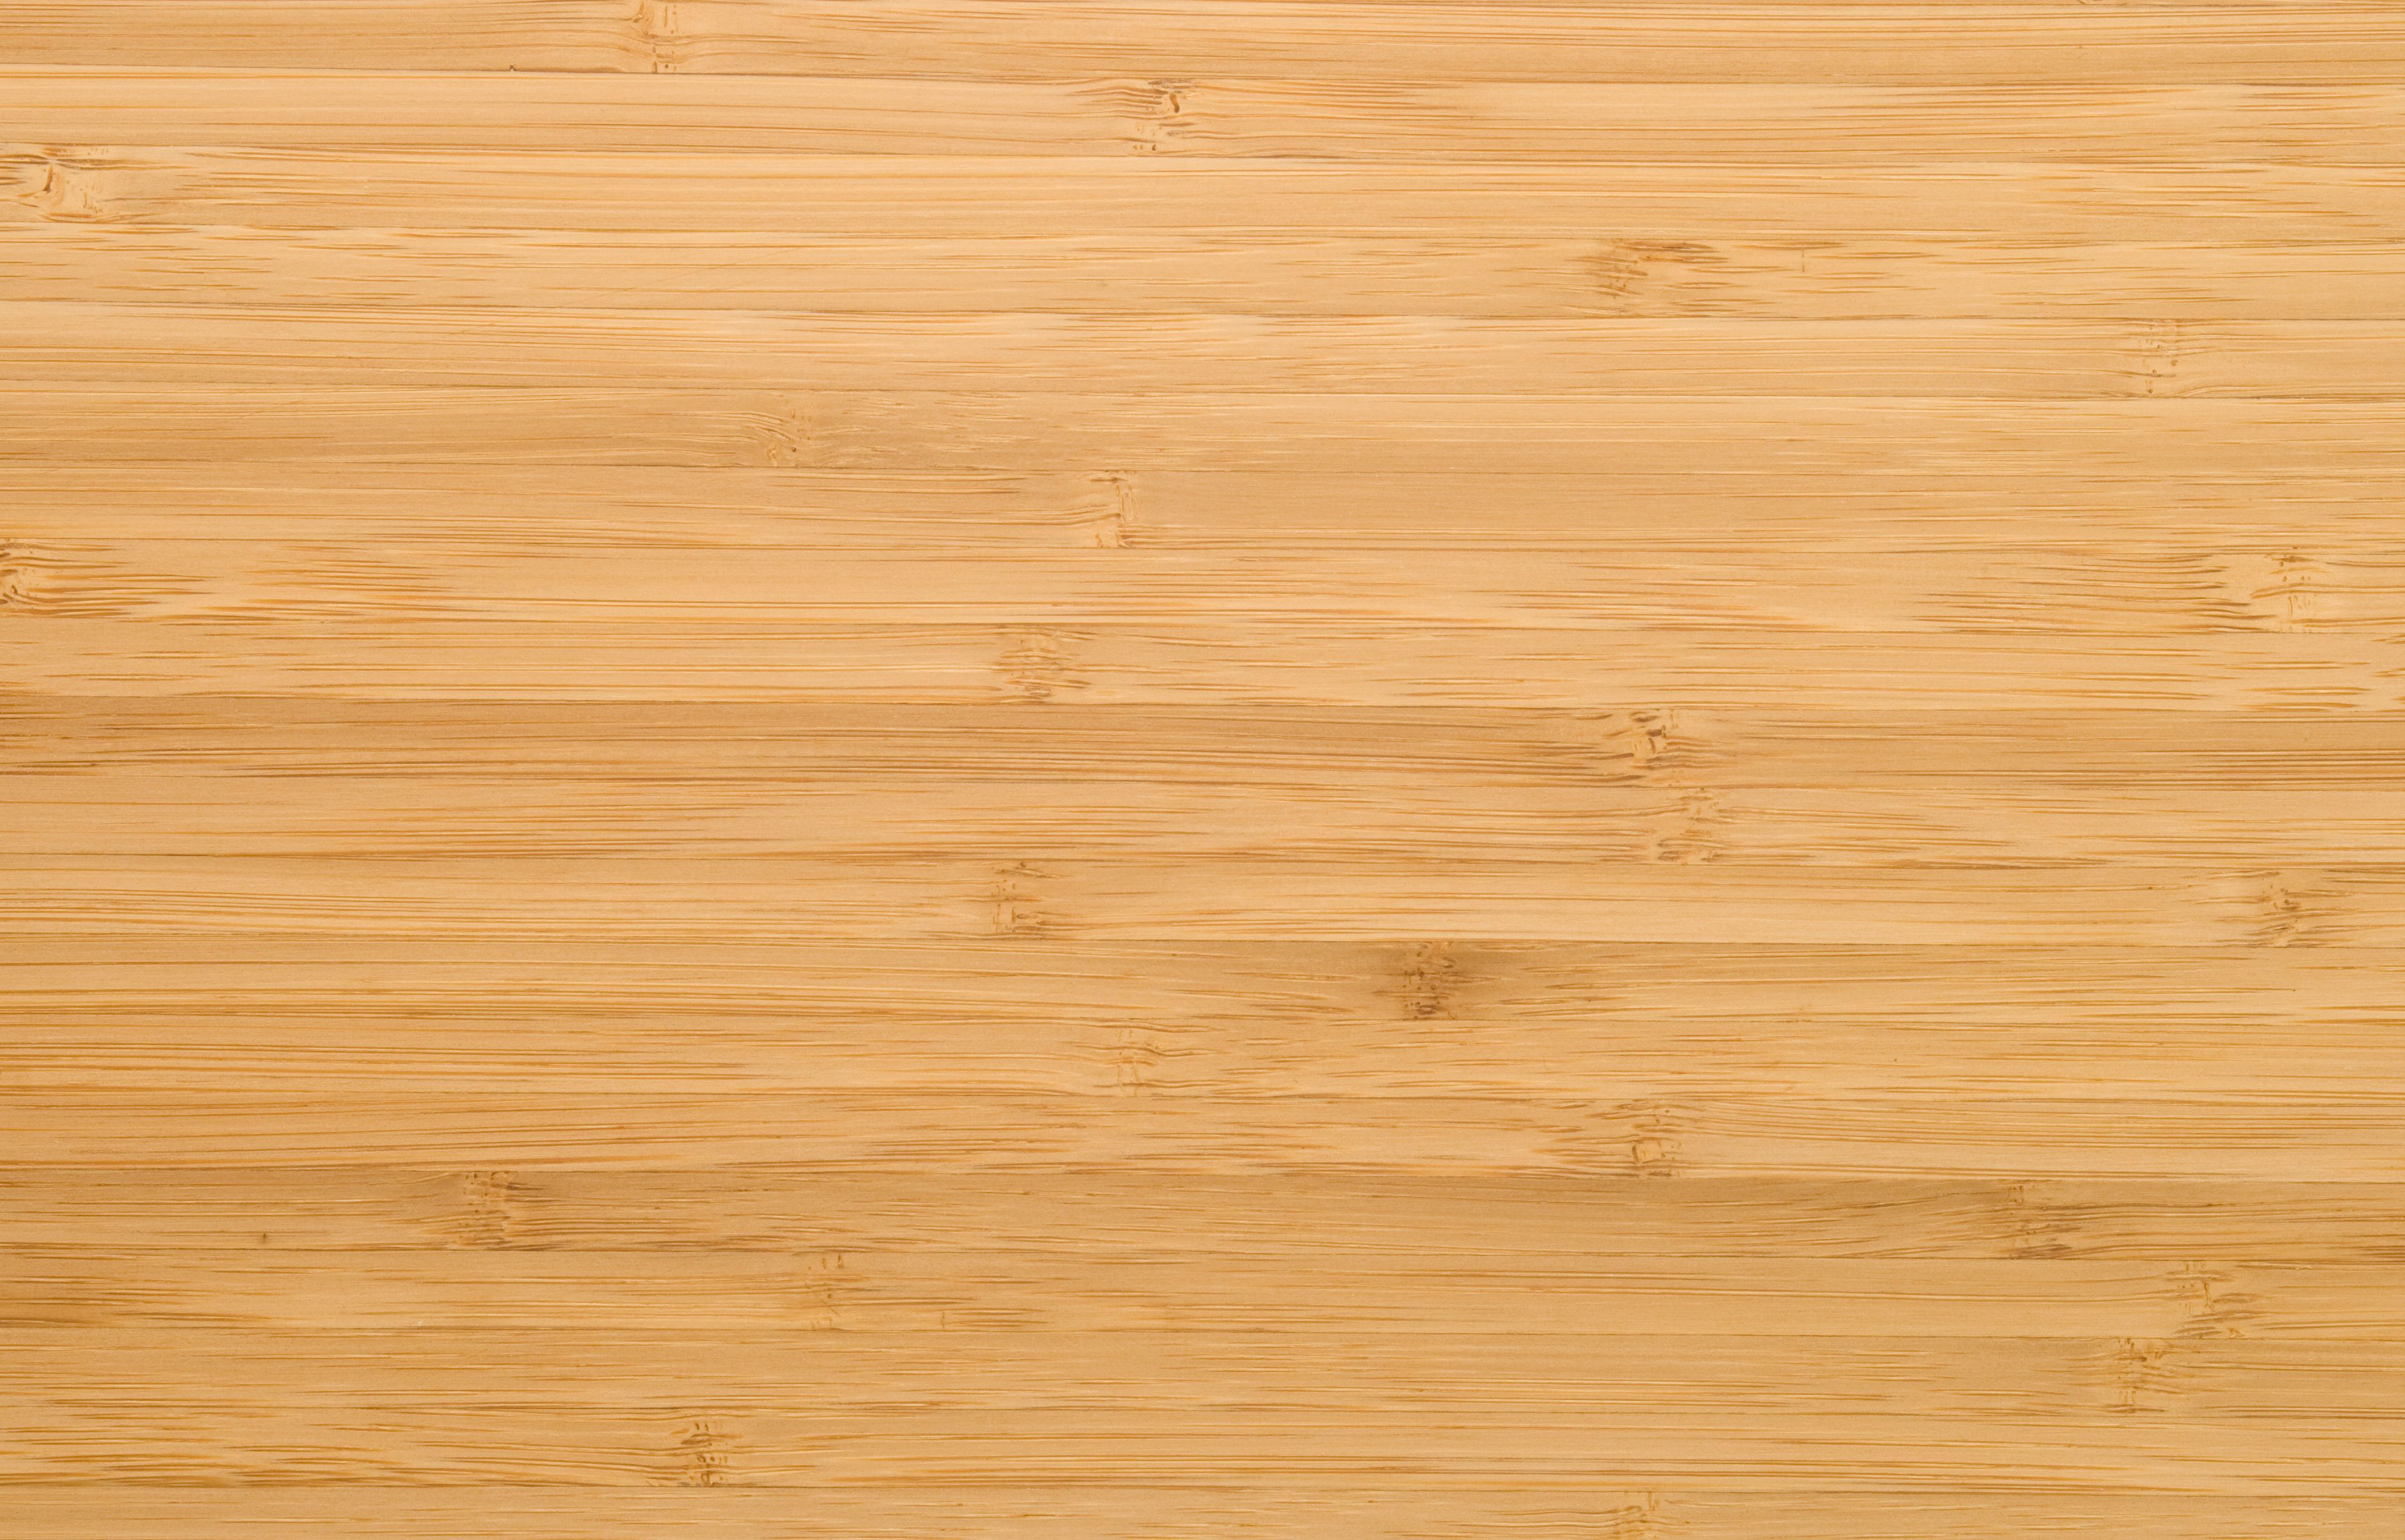 Can You Use A Wet Mop On Bamboo Floors In 2020 Bamboo Flooring